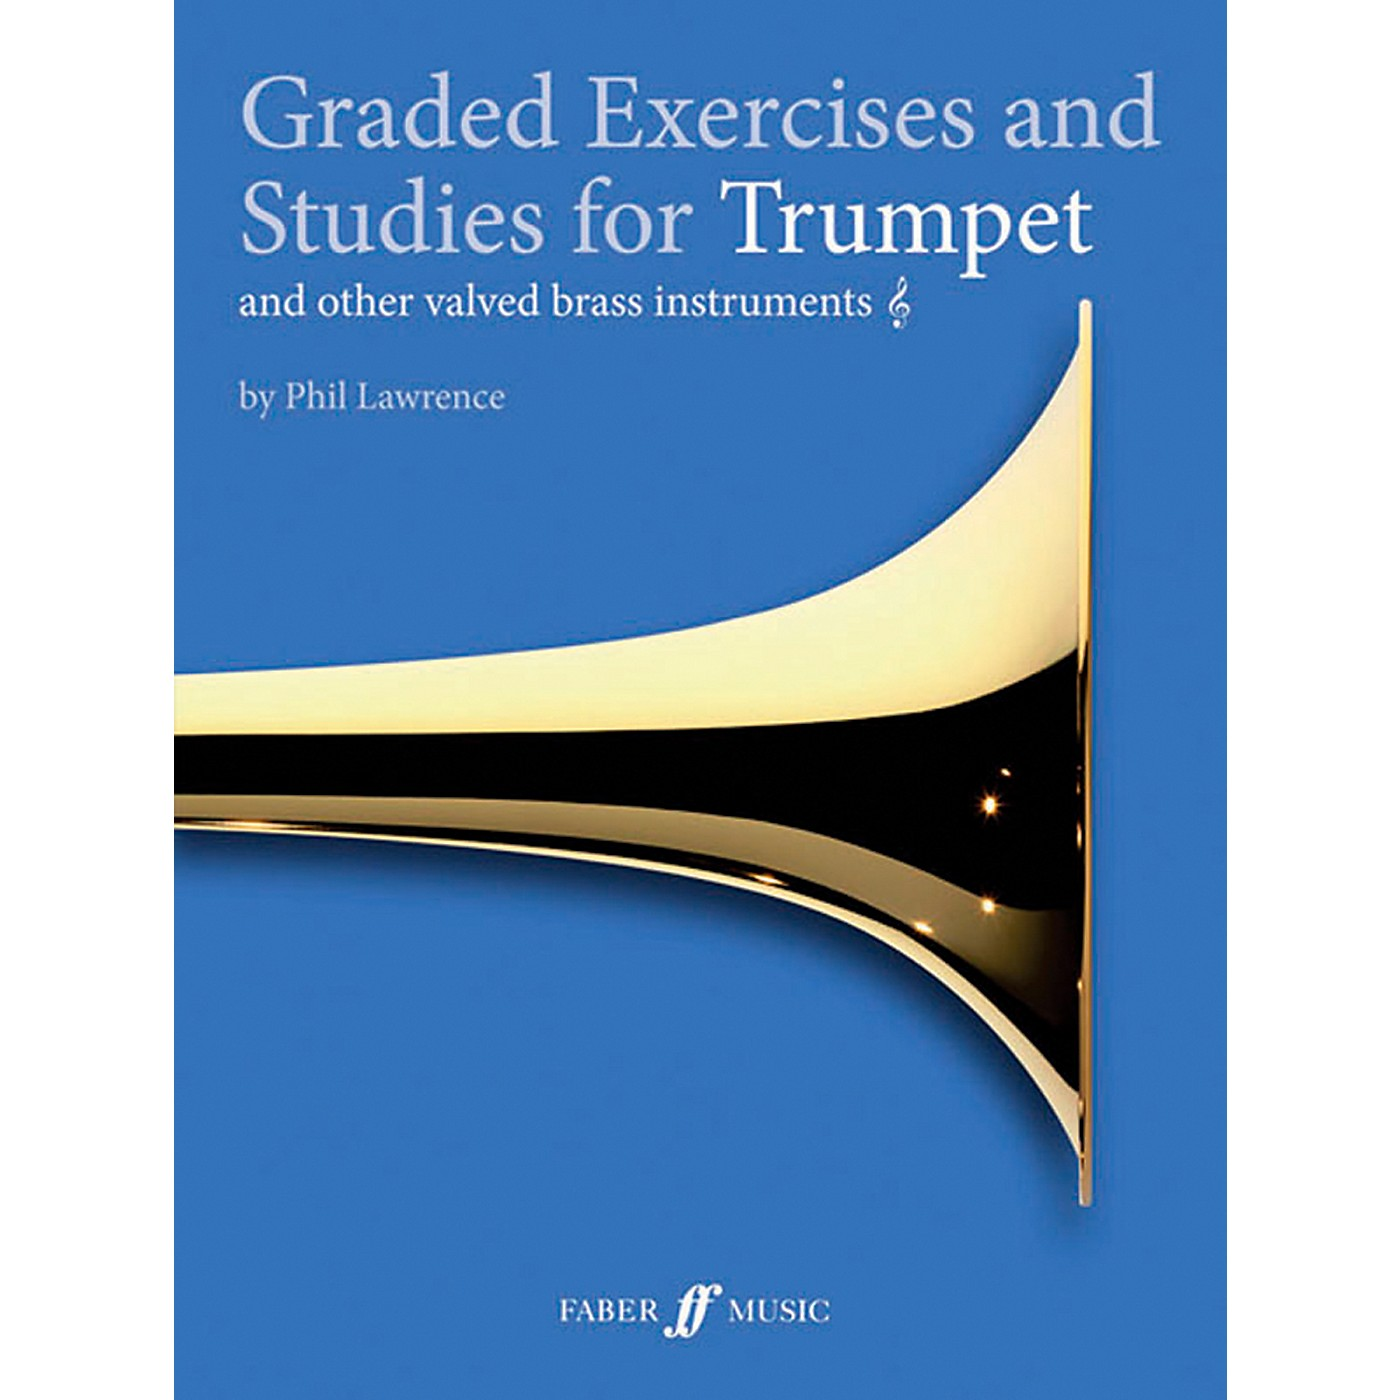 Faber Music LTD Graded Exercises for Trumpet and Other Valved Brass Instruments Book thumbnail